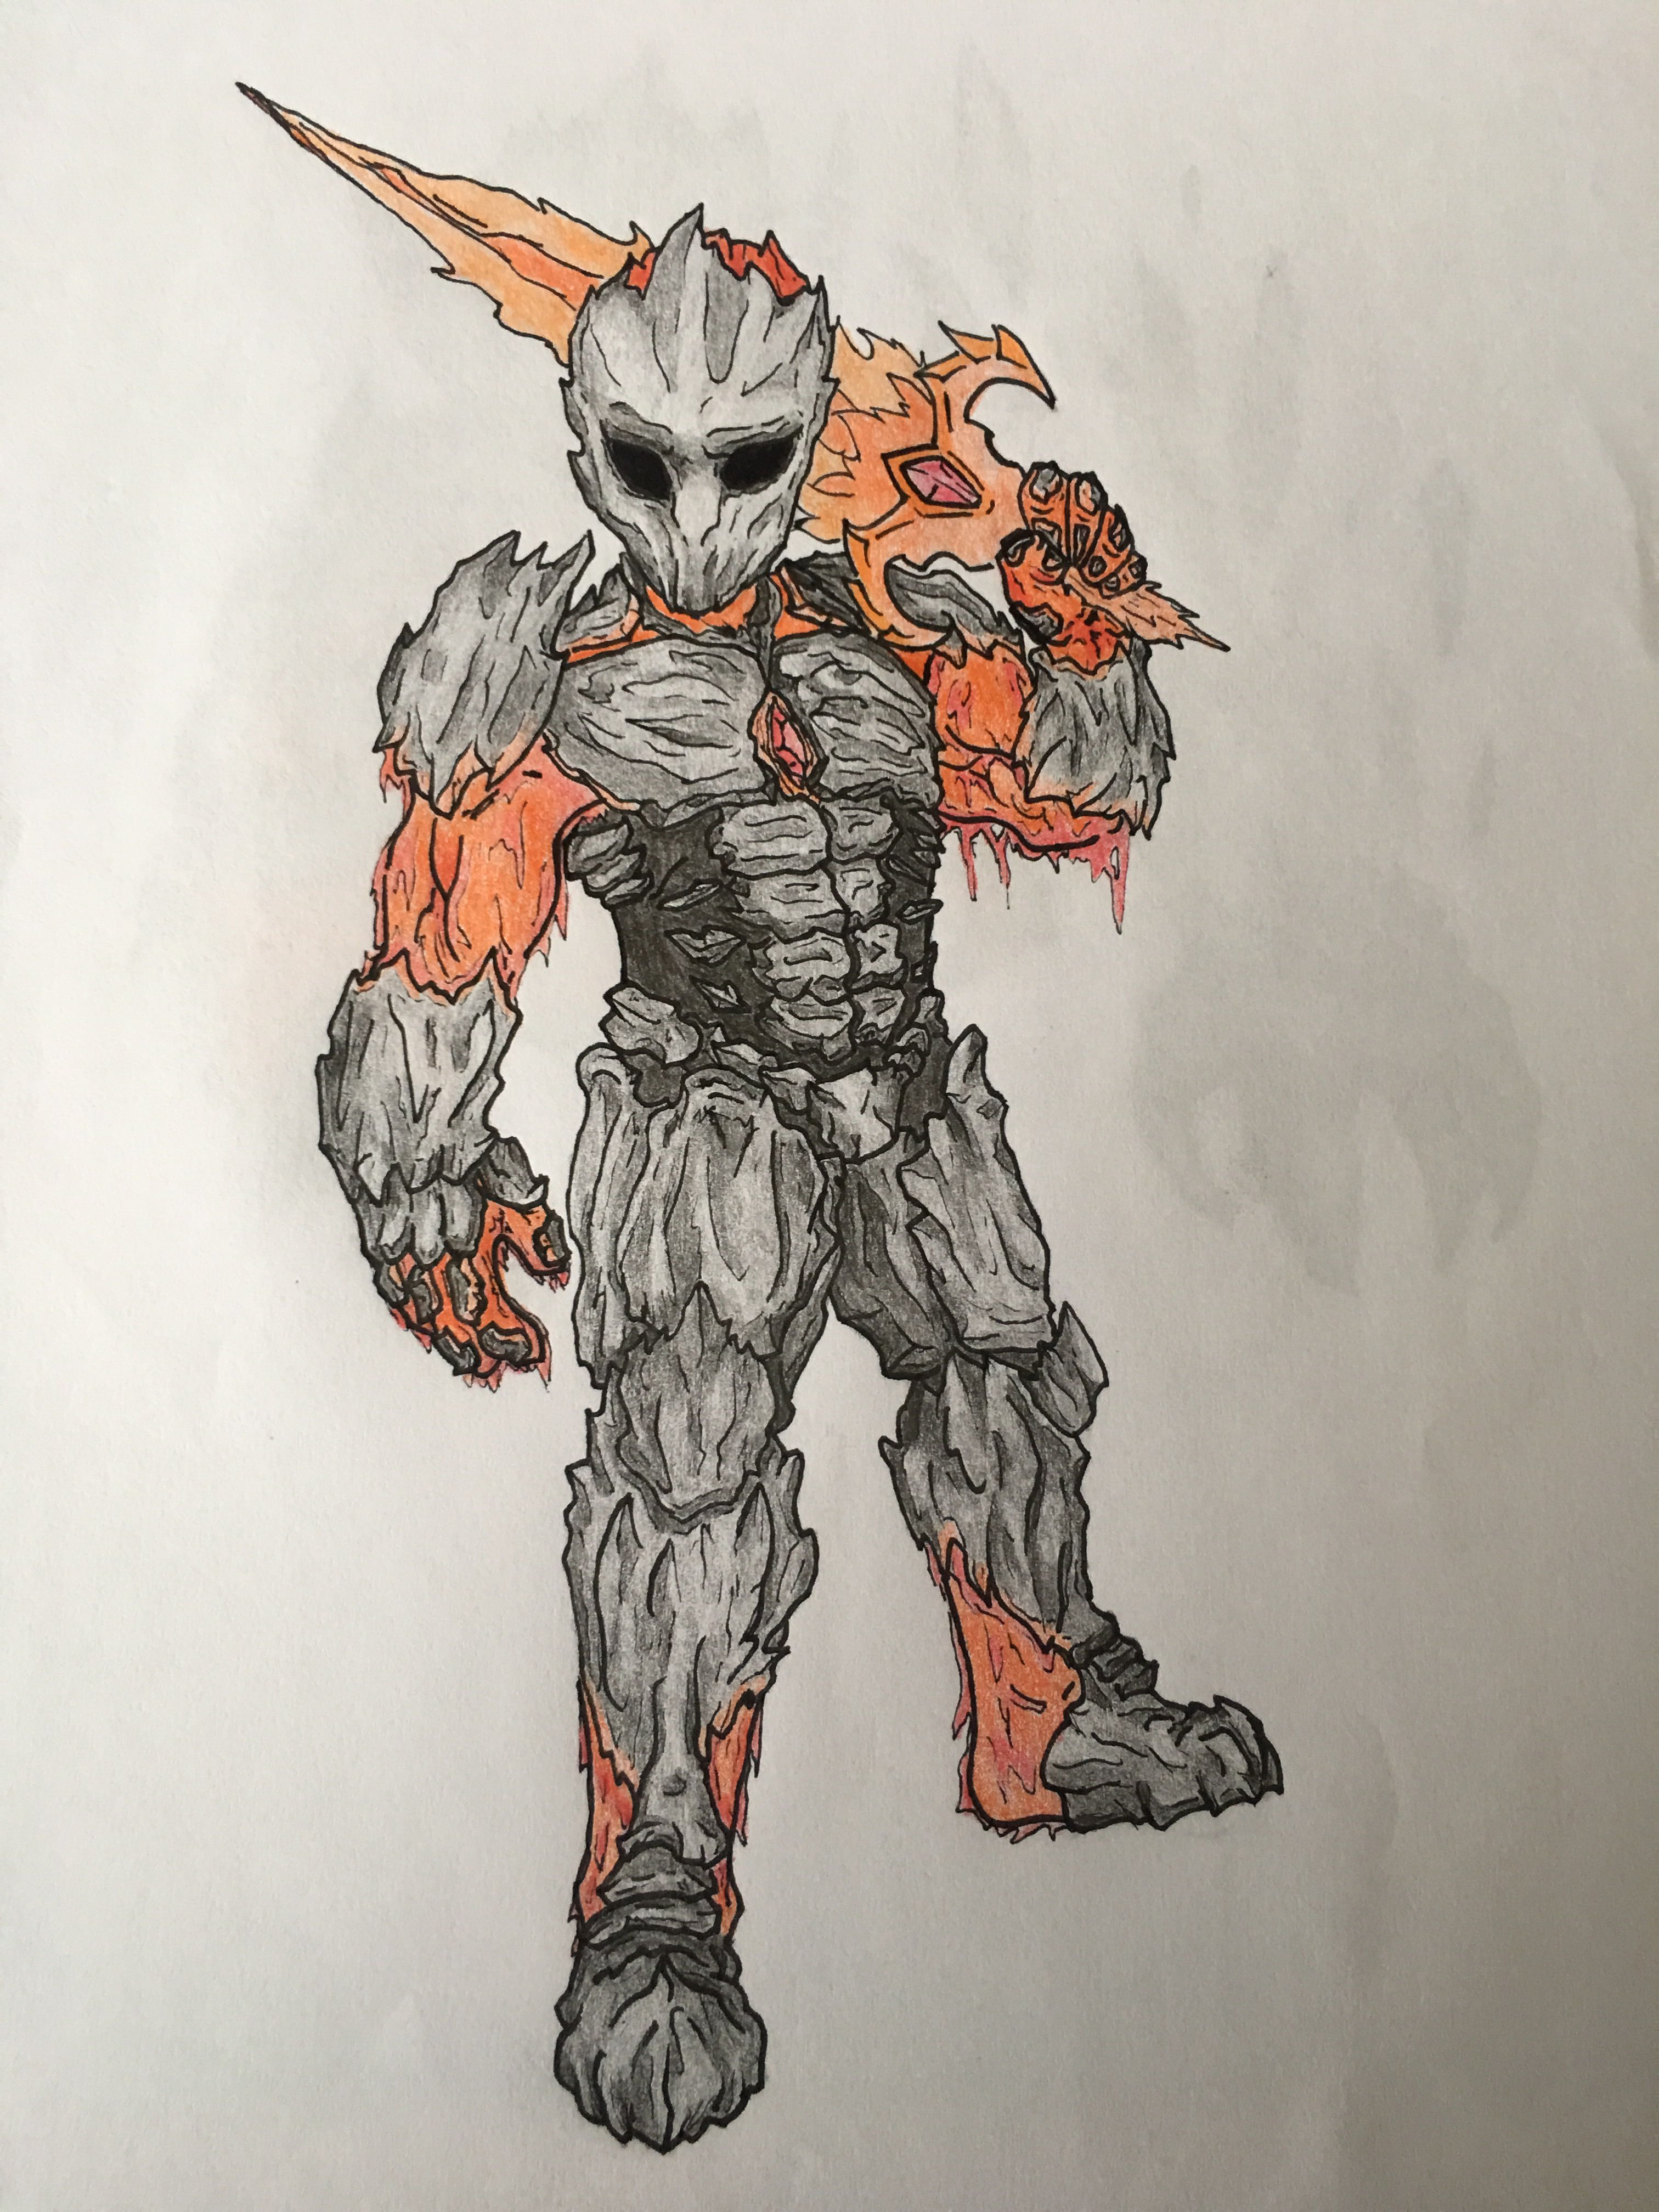 The Lava Armor From Terraria Terraria Memes My Drawings Art Drawings Simple